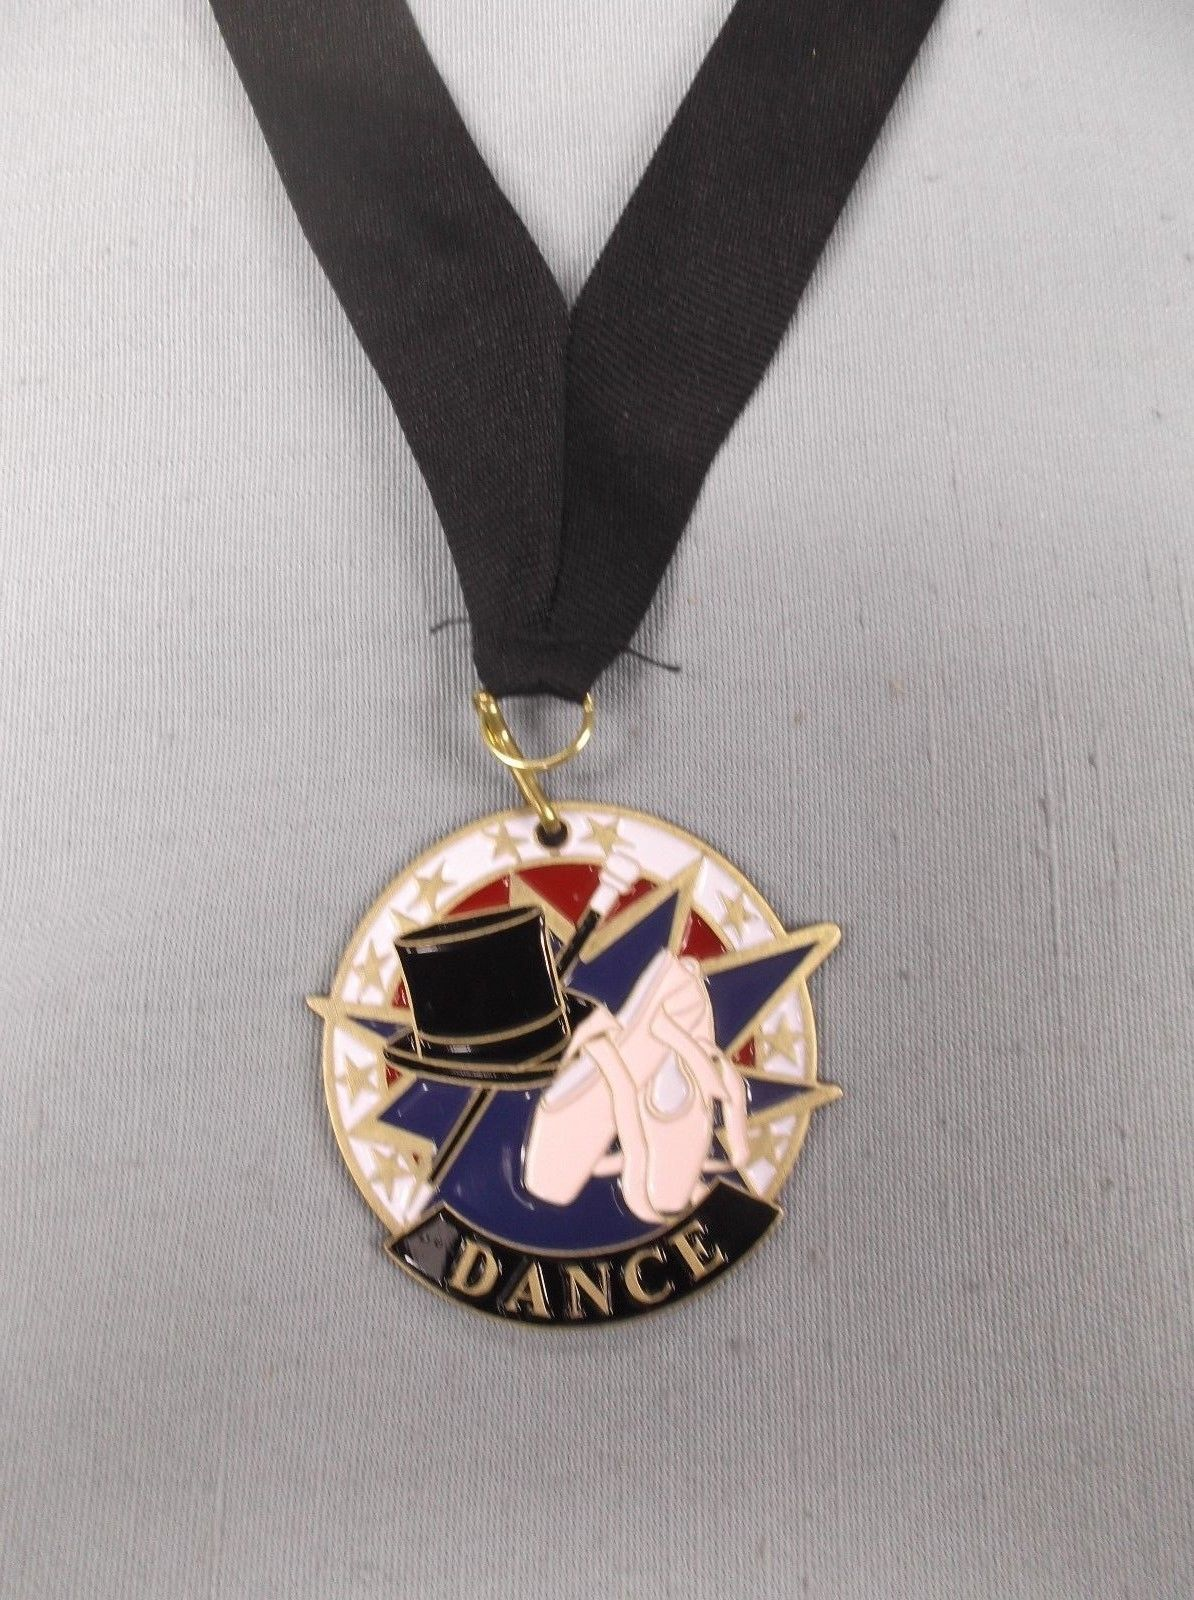 tap dance trophy award red white blue enameded medal with neck ribbon